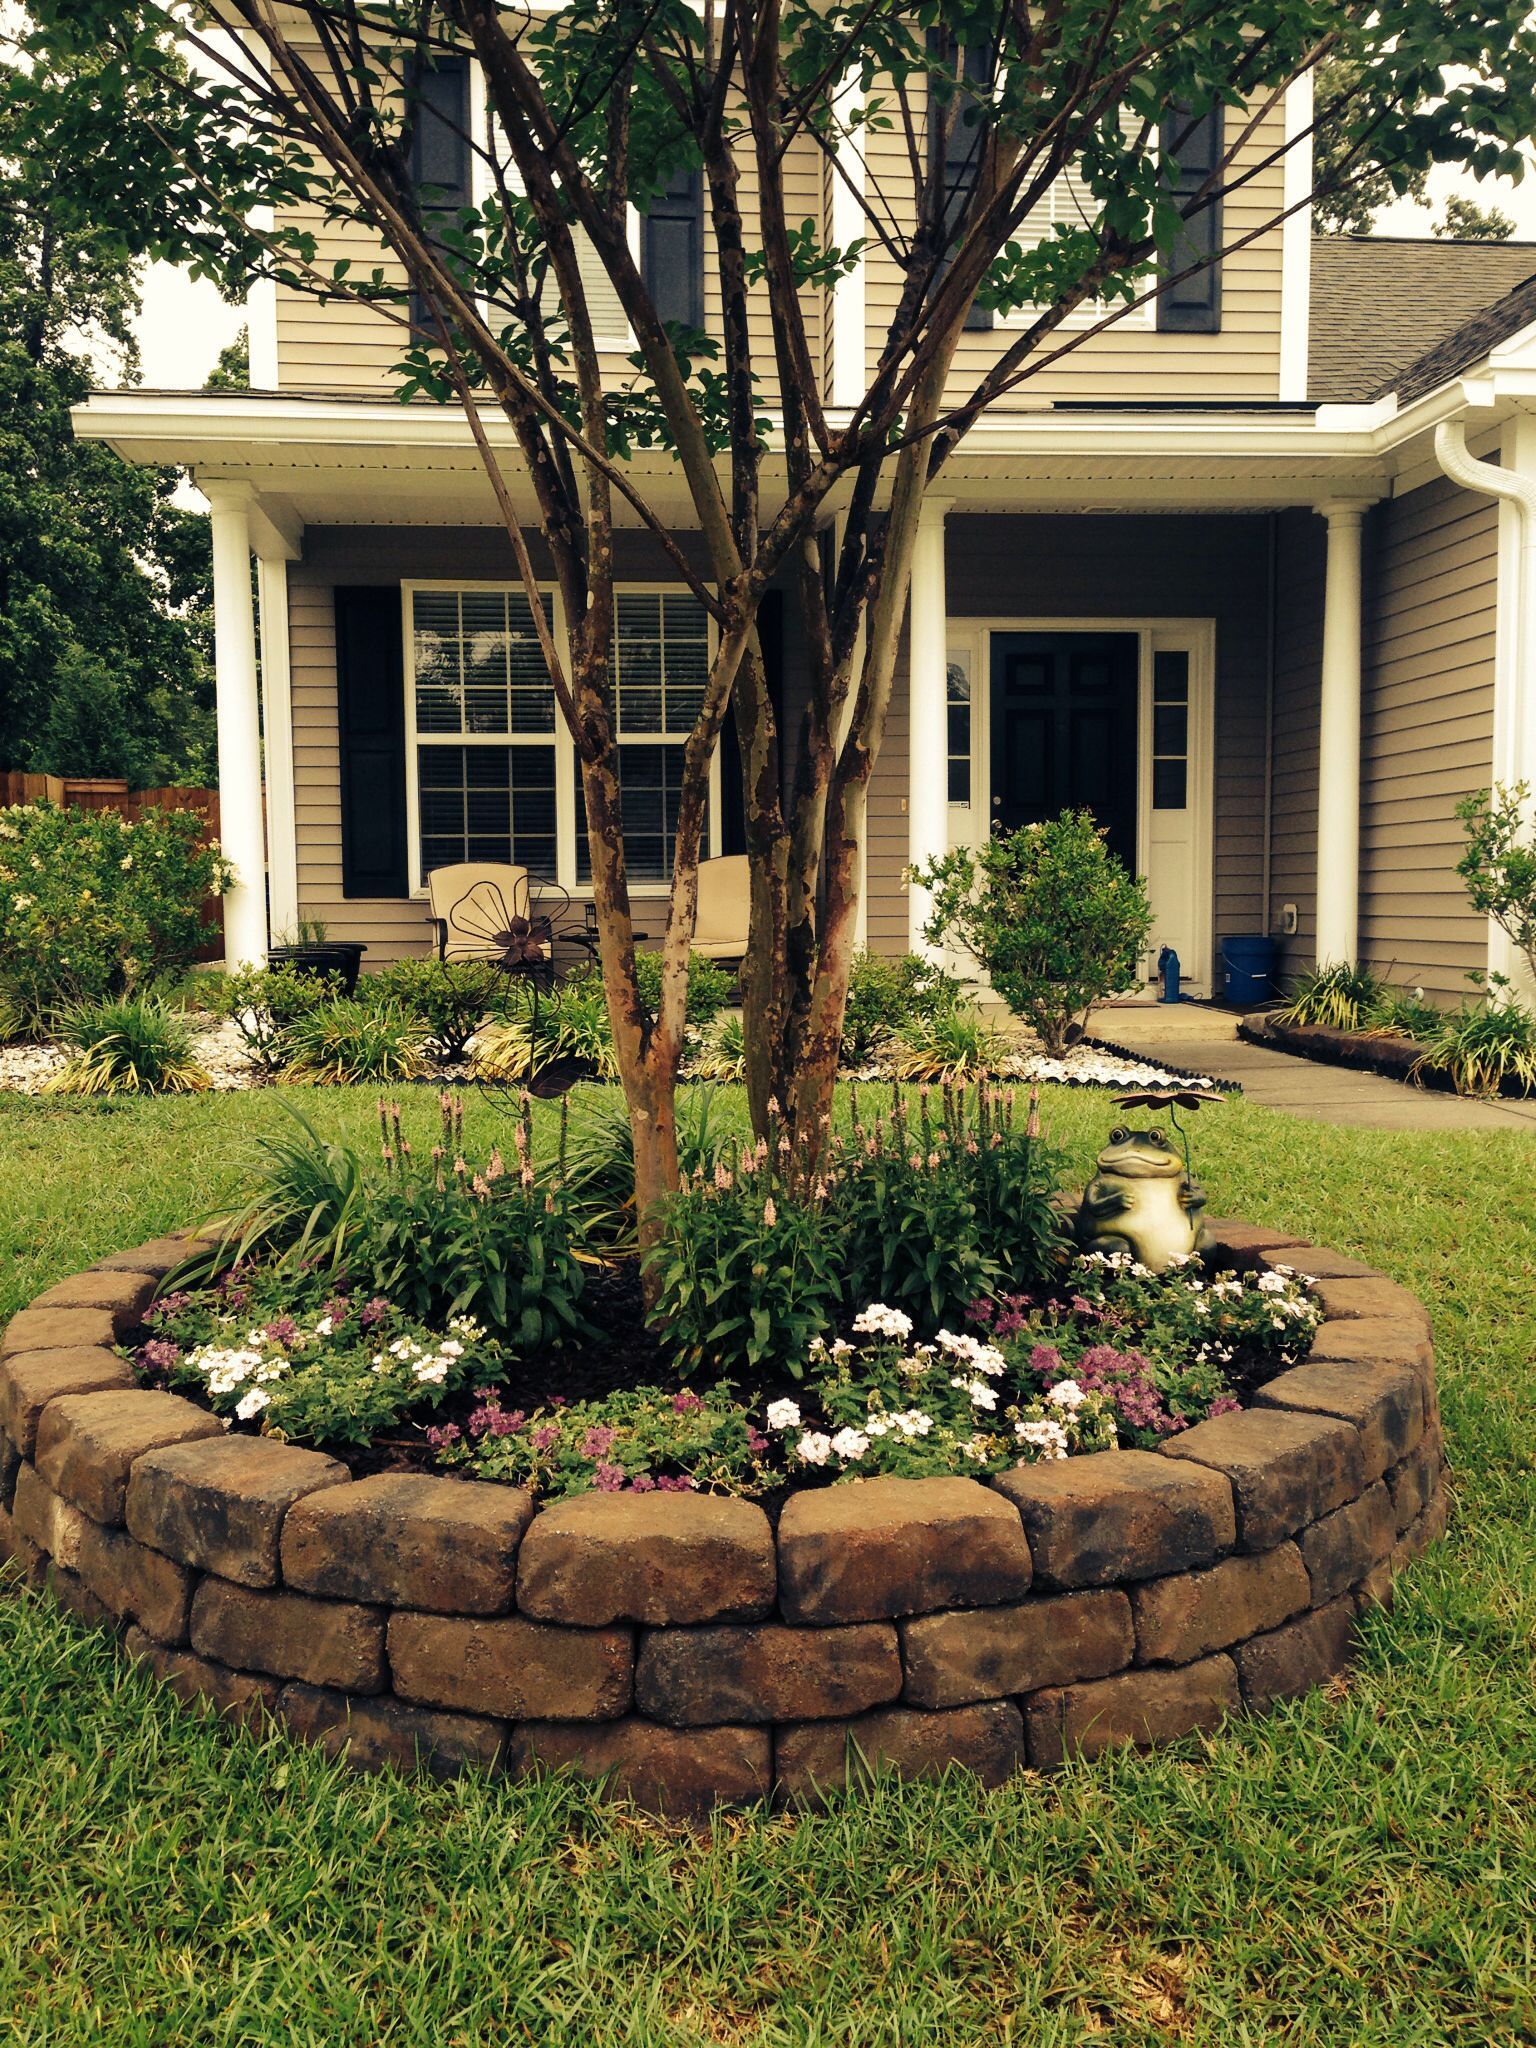 Yard Landscaping Landscaping Ideas And Front Yards: Share